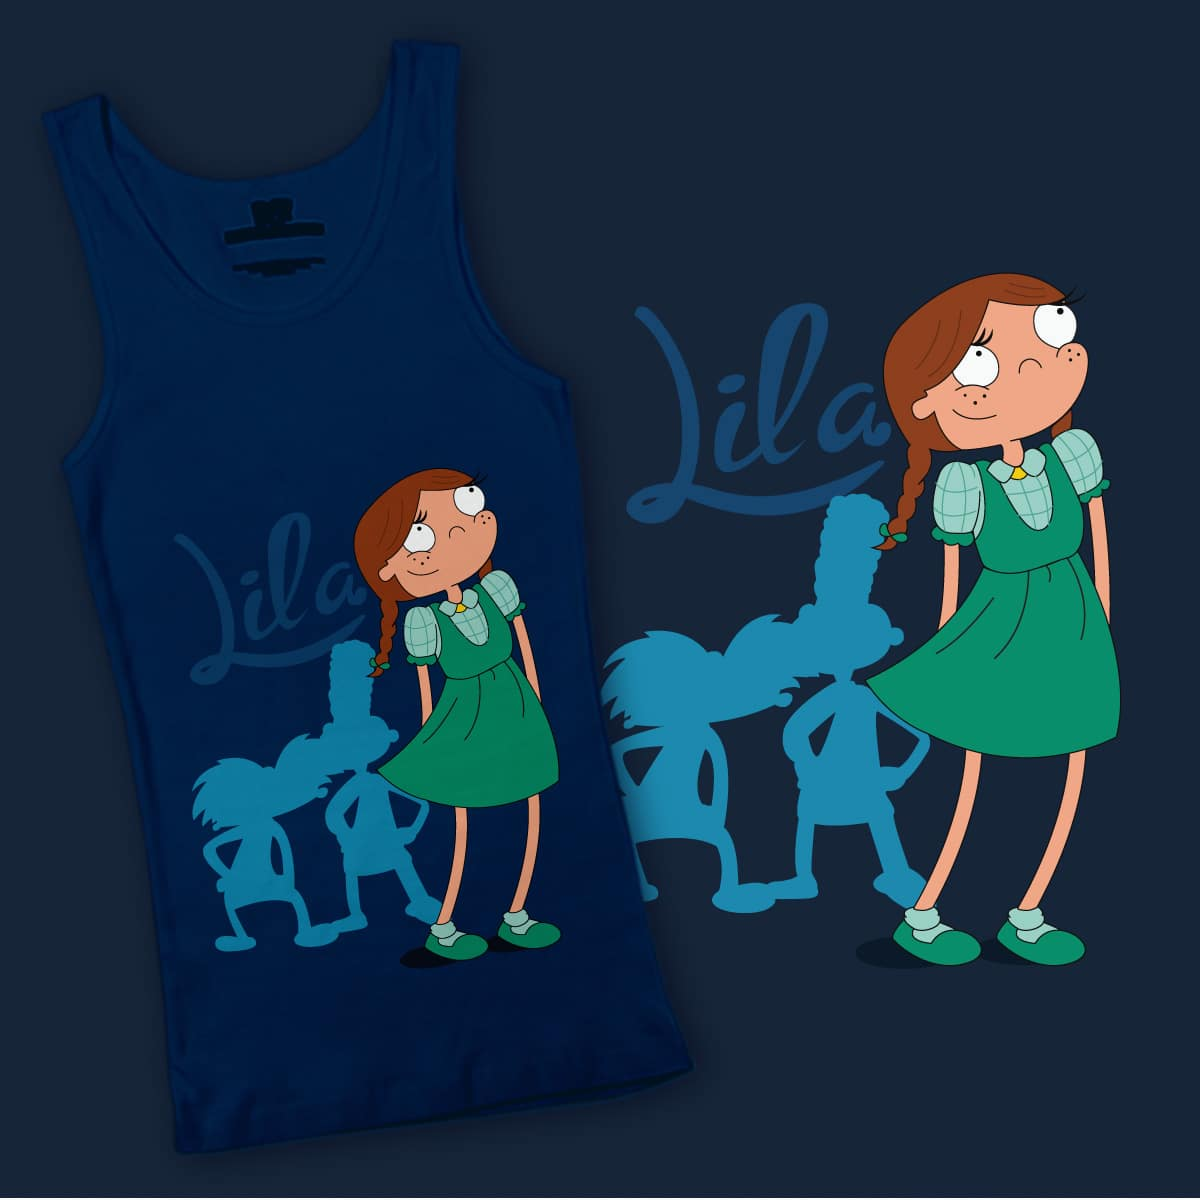 Lila by chencha on Threadless